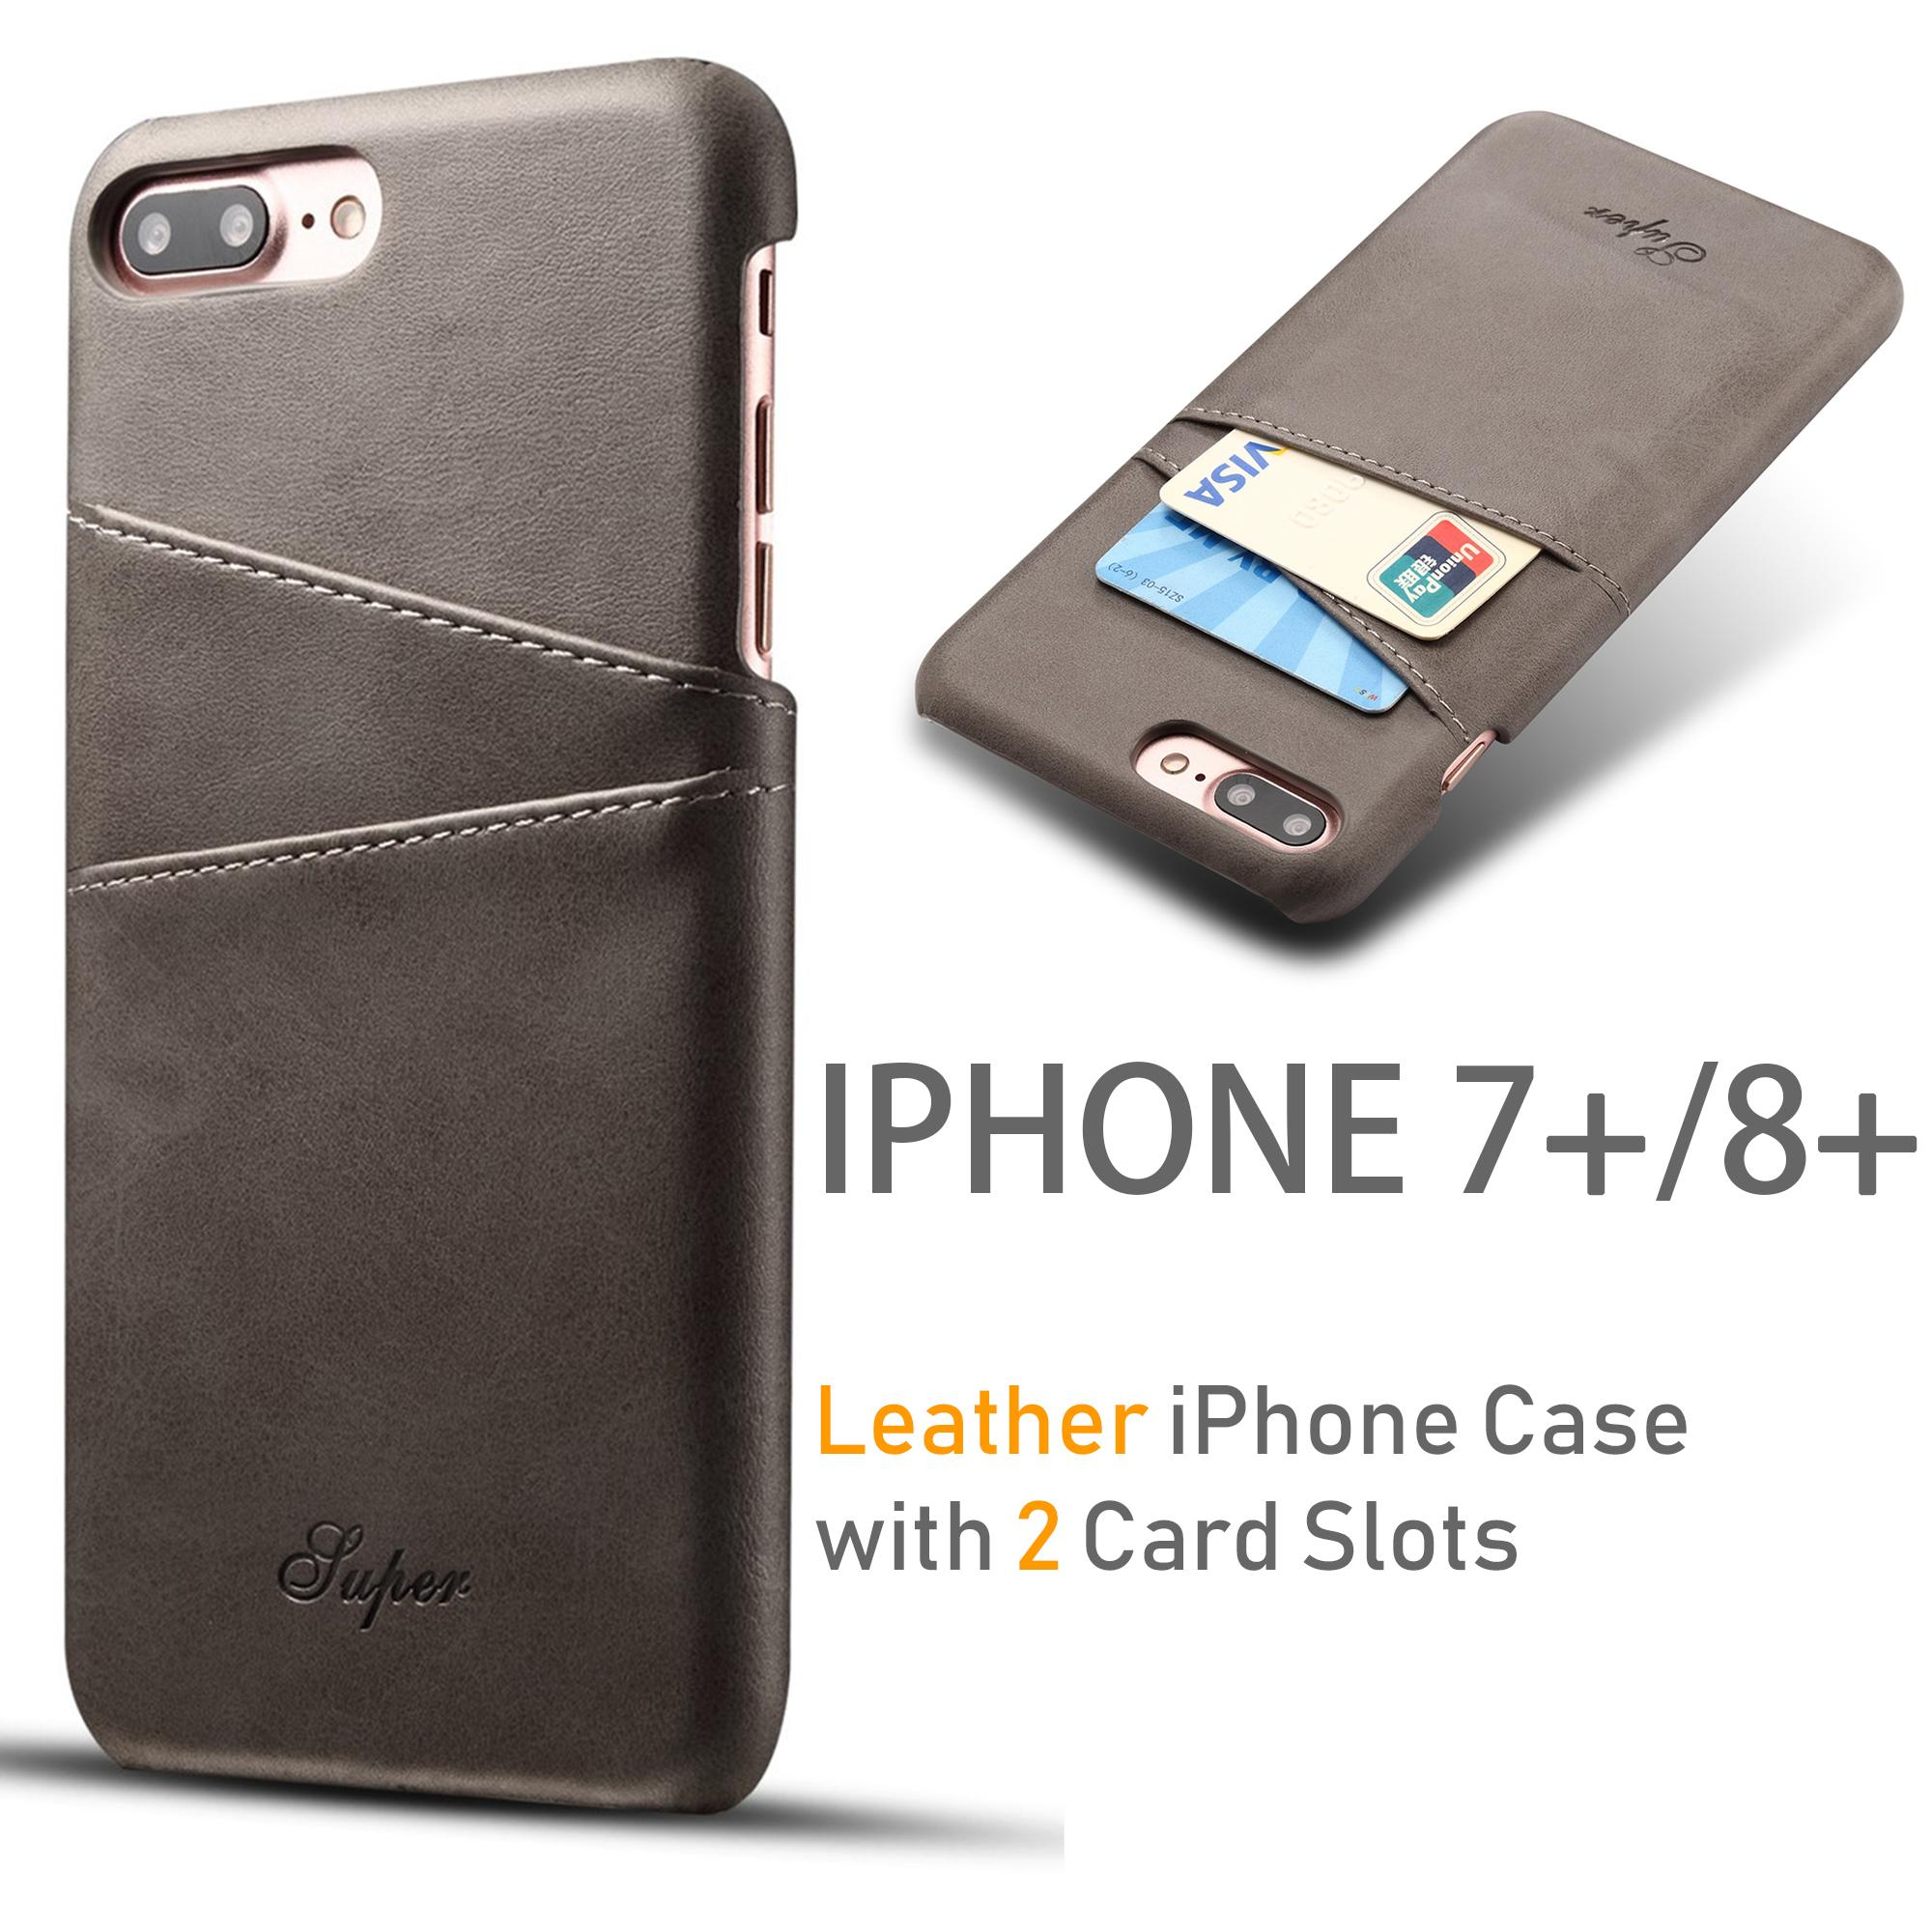 san francisco 1164b ed7d7 [iPhone 7 plus and iPhone 8 plus (5.5 inch)] Luxury High Quality PU Leather  Slim iPhone Armor Case /Cover with 2 Credit Card Holder Slot. Perfect ...